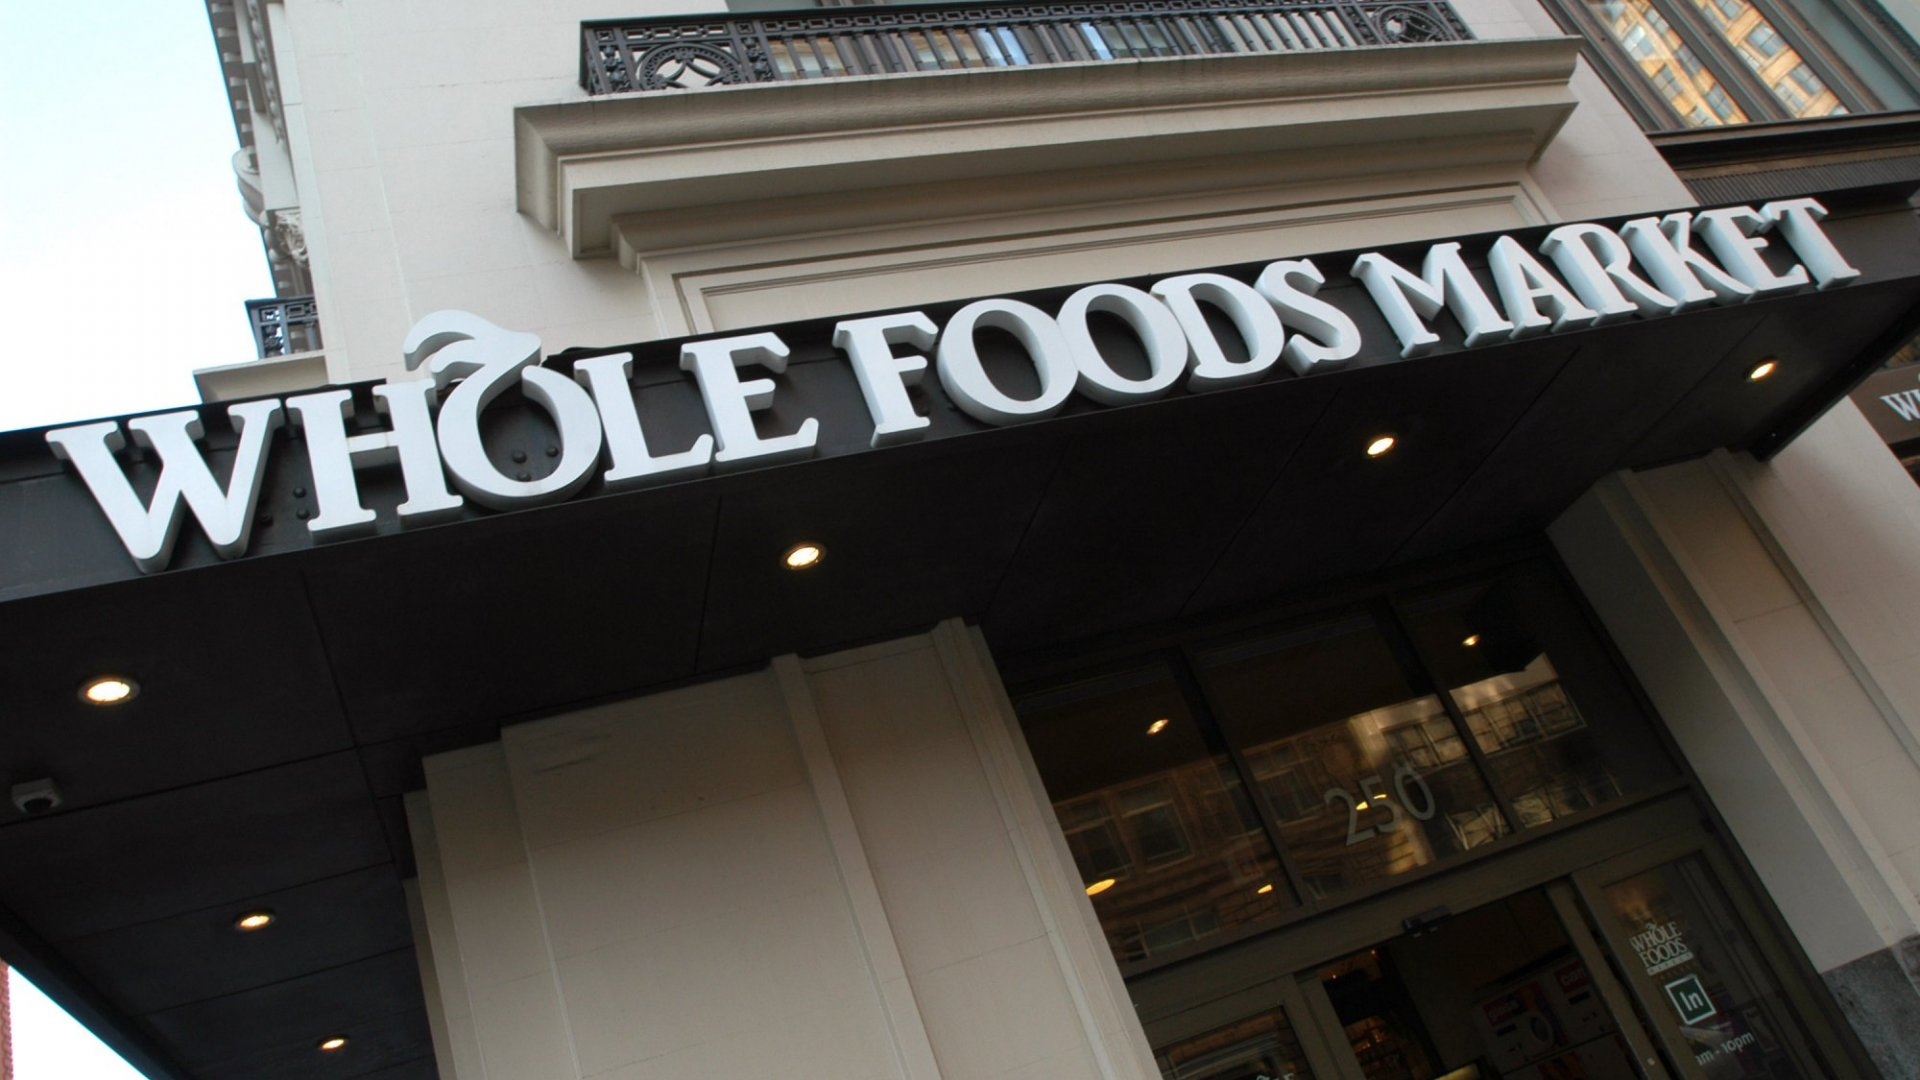 Did Whole Foods Really Just Open an Asian-Food Restaurant Called Yellow Fever? (The Answer May Surprise You)